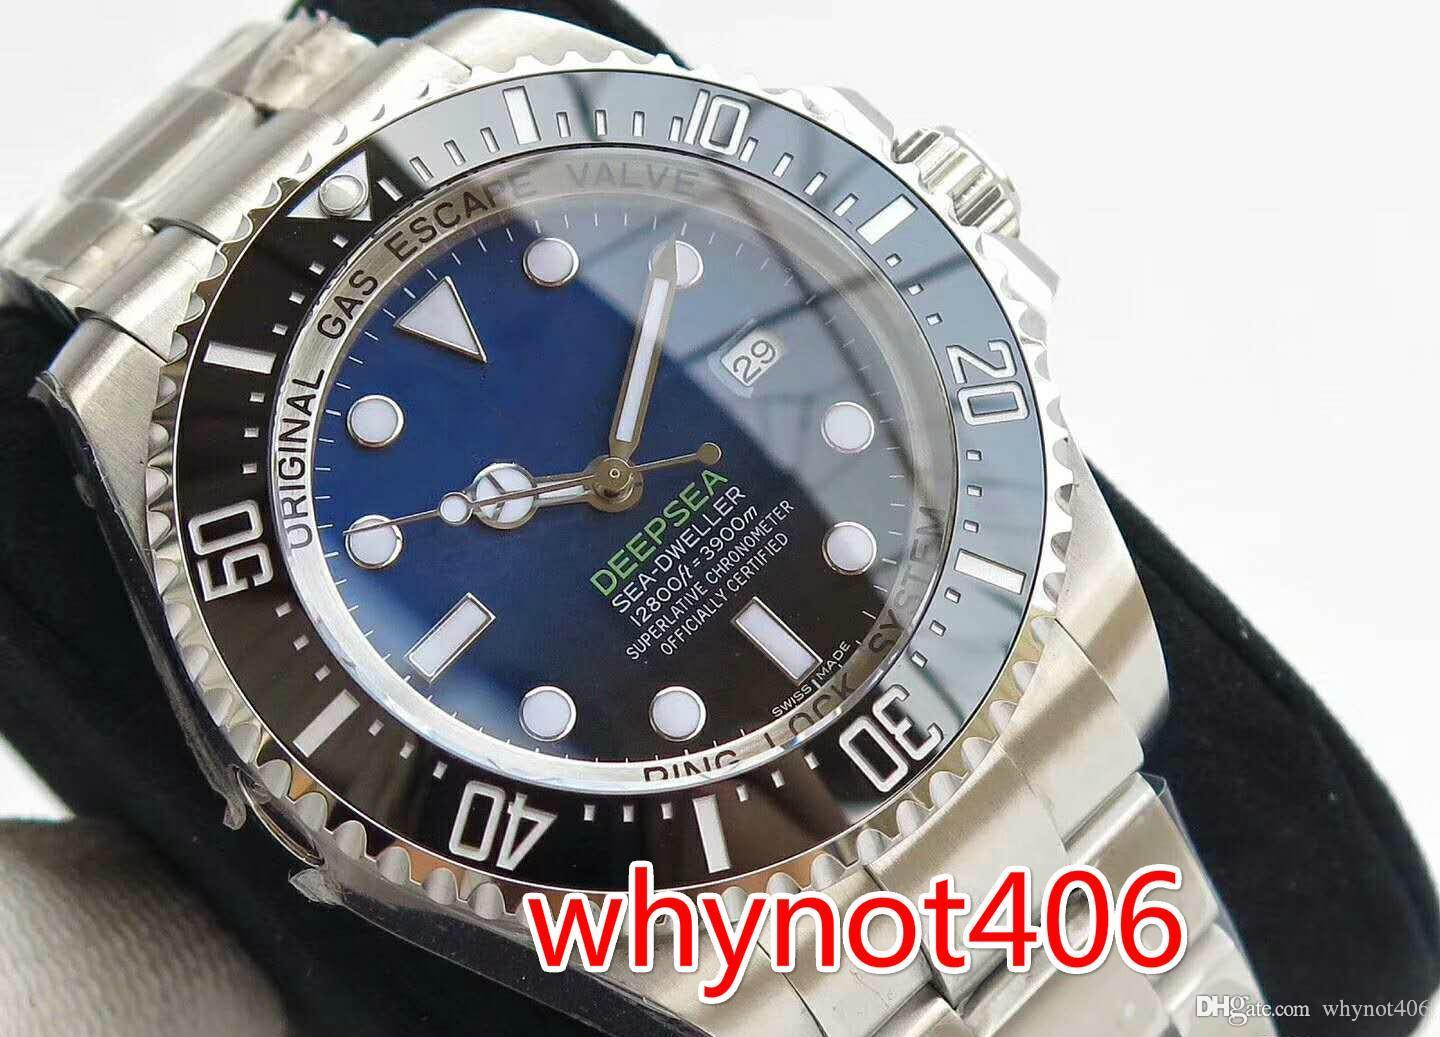 Luxury watch 116660-98210 ghost king, ceramic ring mouth, sapphire mirror sliding buckle.Waterproof depth of 300 meters.You can swim in the